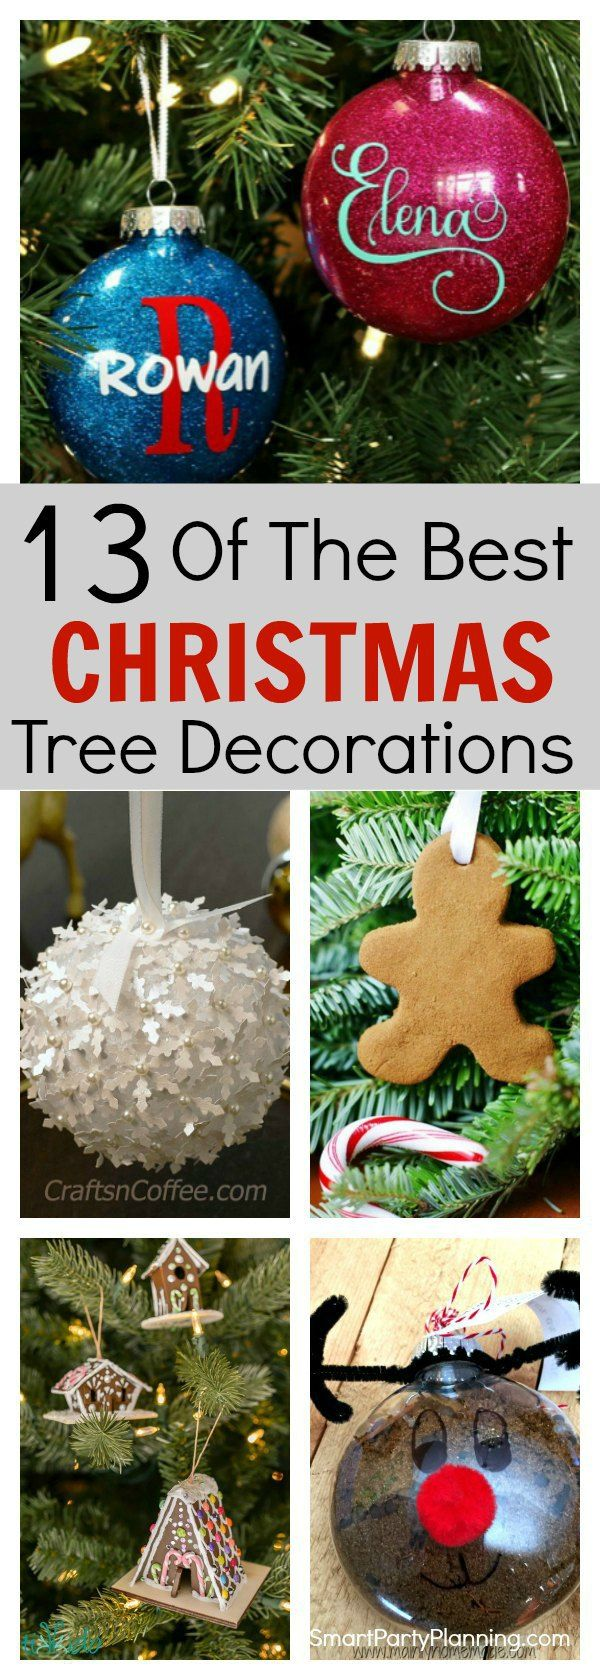 "13 of the best Christmas Tree Decorations"" width=""600"" height=""1680"" data-pin-description=""Why not try your hand at a bit of DIY and create your own Christmas tree decorations this year. This selection is all easy and fun to make, they and are great for kids to get involved in. They will make a fantastic holiday activity which you can enjoy year after year. With different themes to try, there is something that everyone will love. #Christmas #Decorations #Craft"